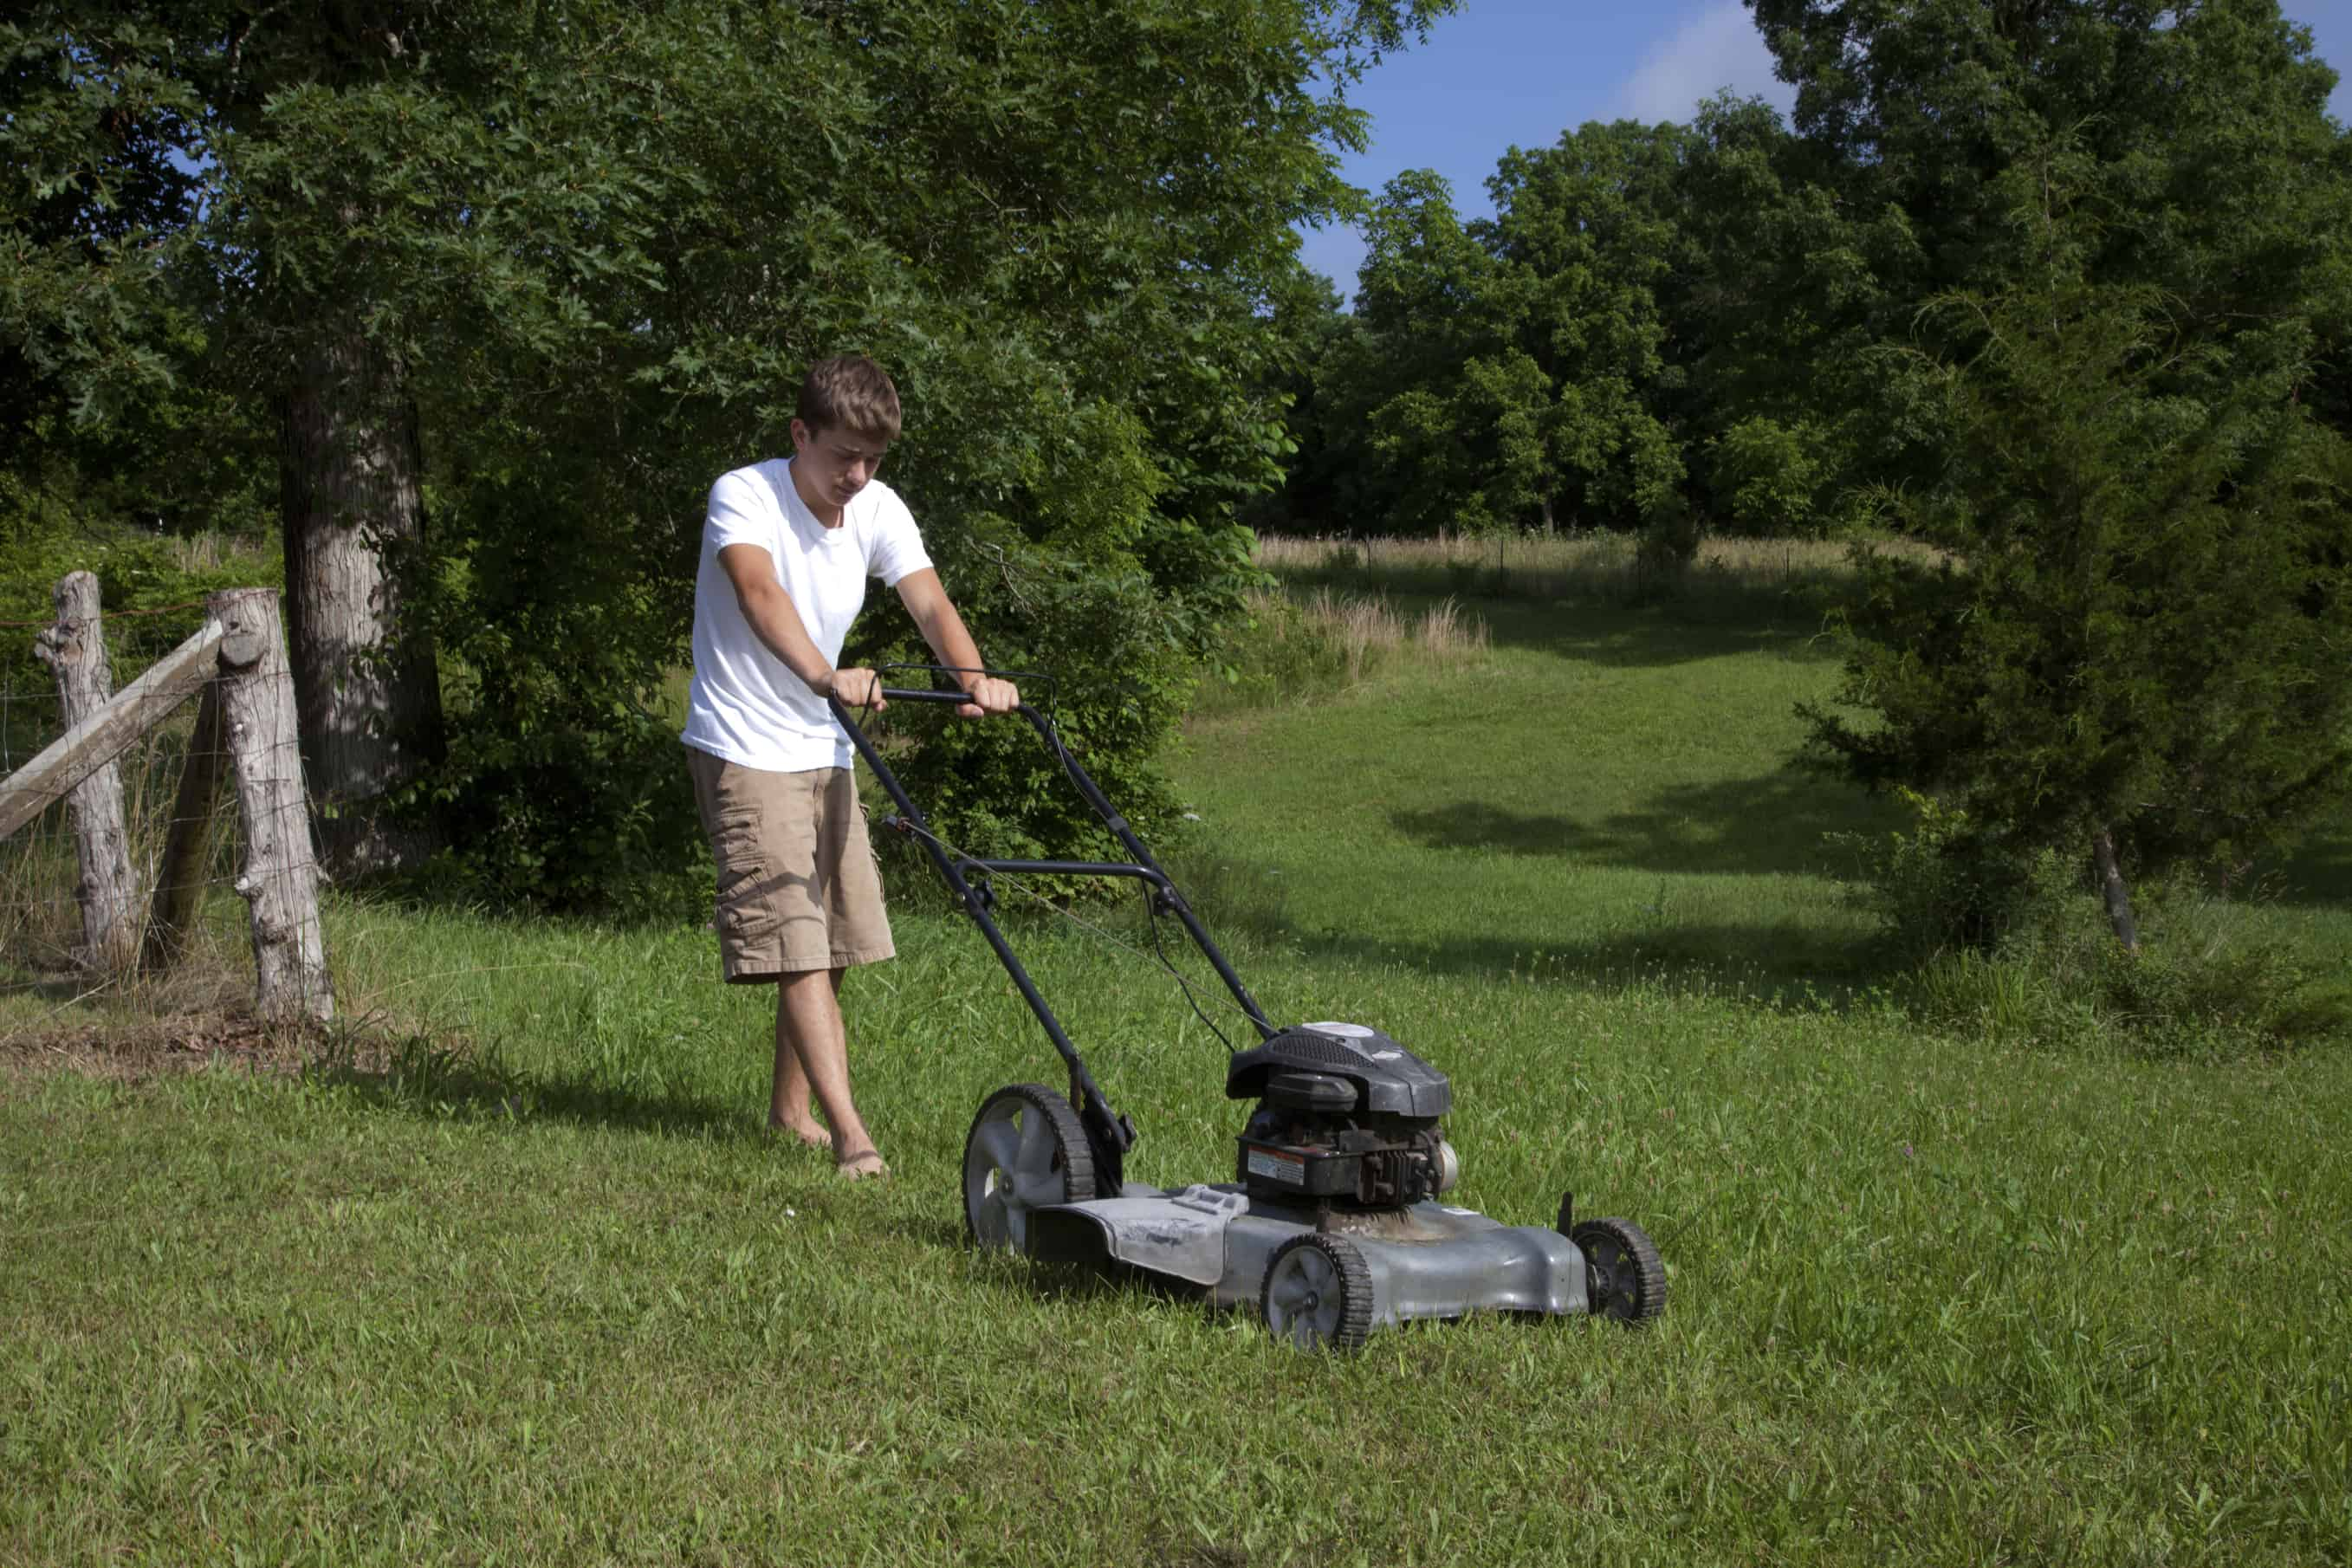 Mowing the grass with a lawnmower